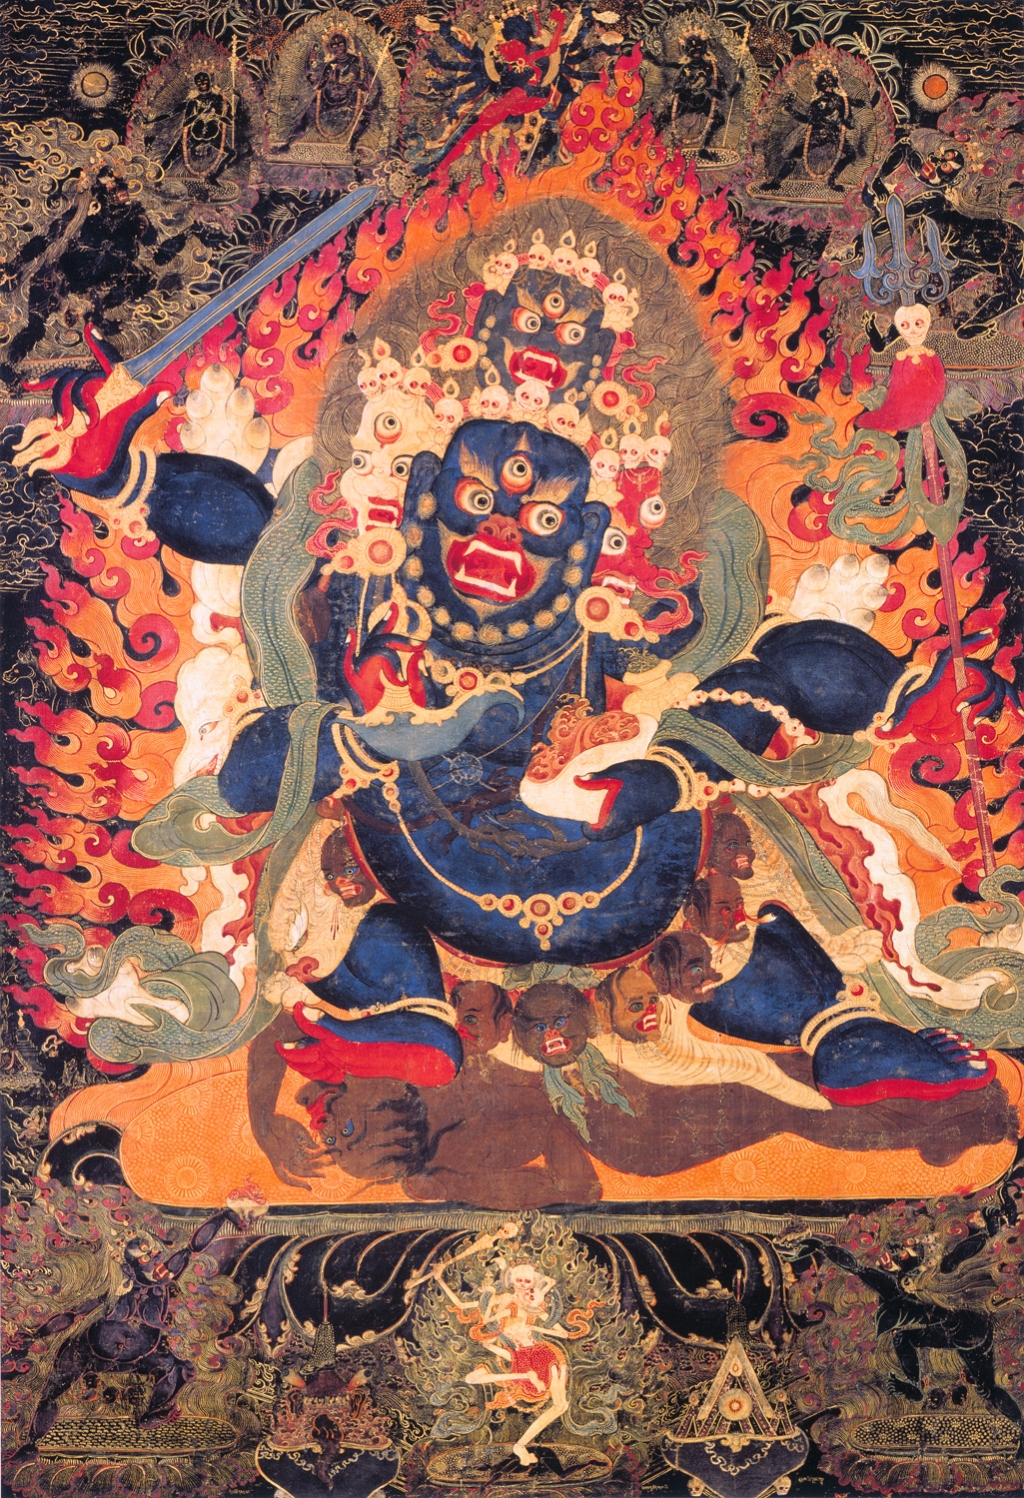 an overview of the role of karma in buddhism Since buddhism lacks a single supreme god, the notion of dharma supplies a form of morality for buddhists, and karma ensures that following its moral path is according to self-interest attributes dharma is a kind of self-evident truth in buddhism.